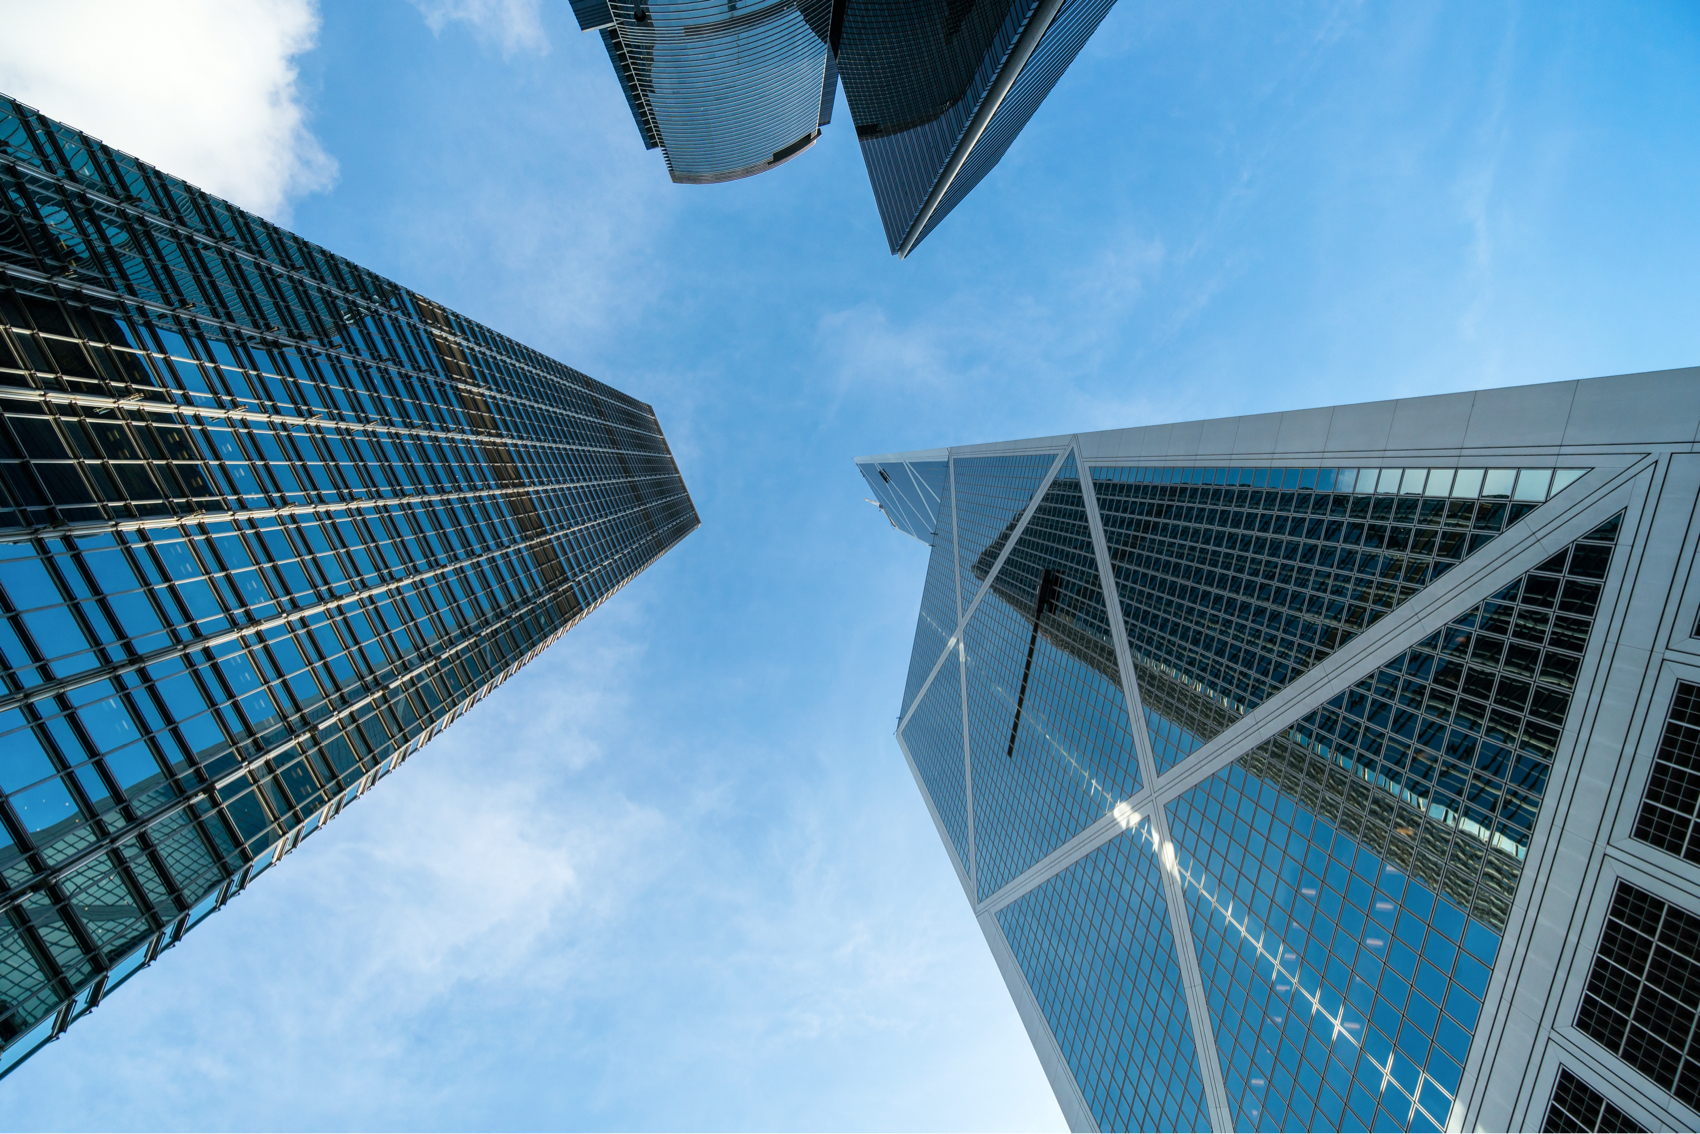 modern-business-building-glass-of-skyscrapers-cent-CCR8QML